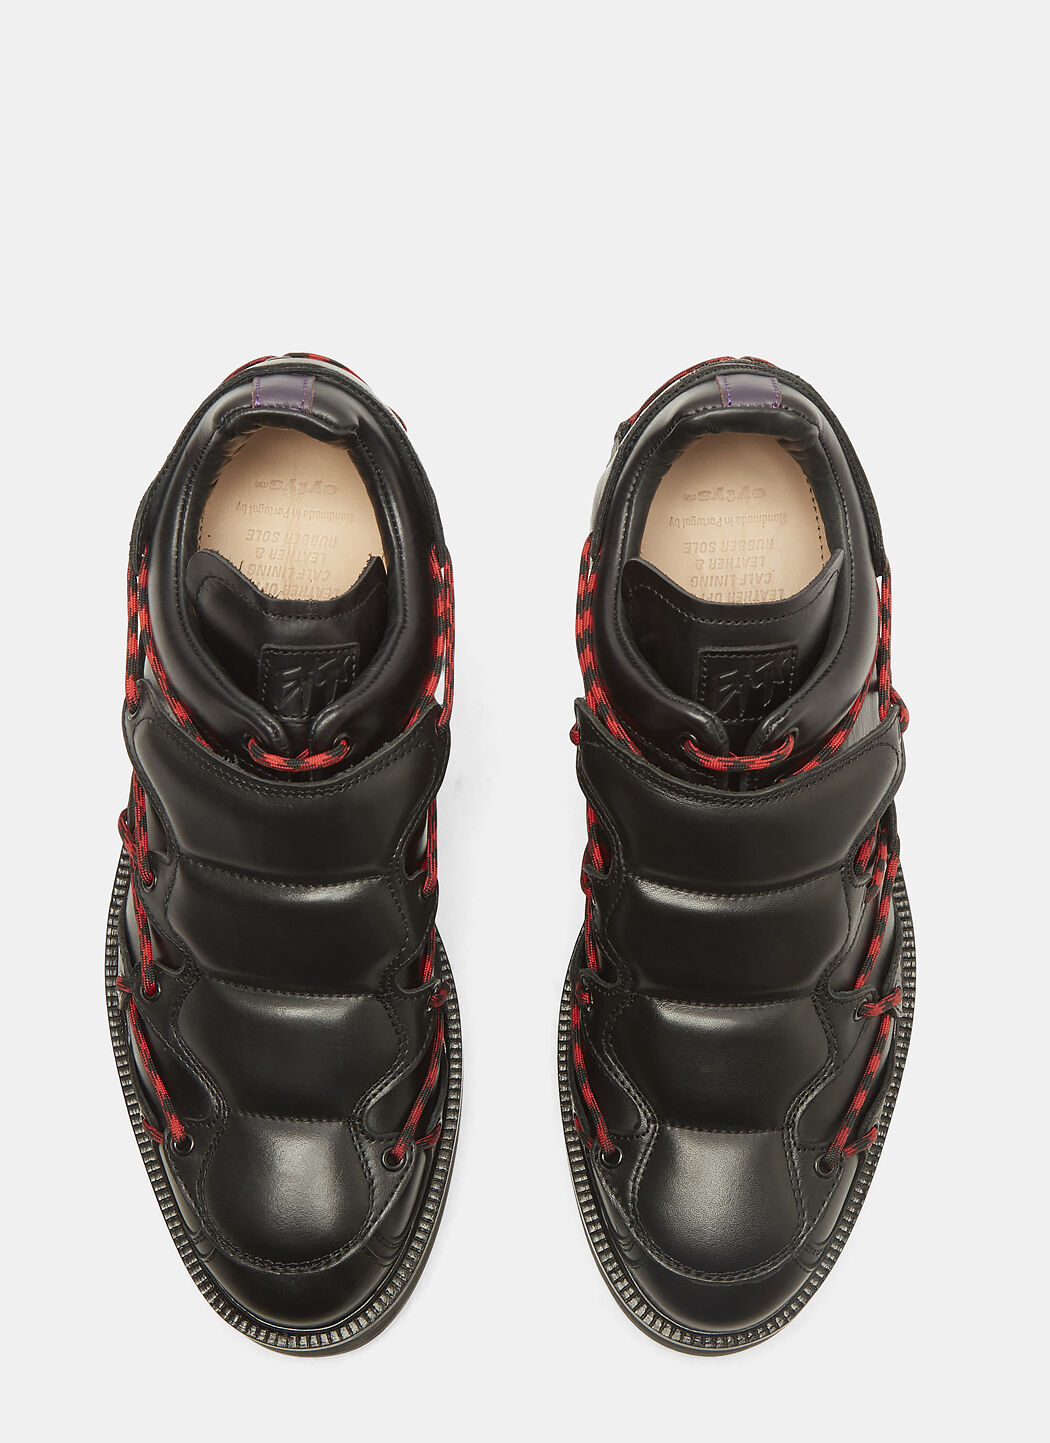 Morso Leather Sneakers Eytys Best Place To Buy Online n8W0Y